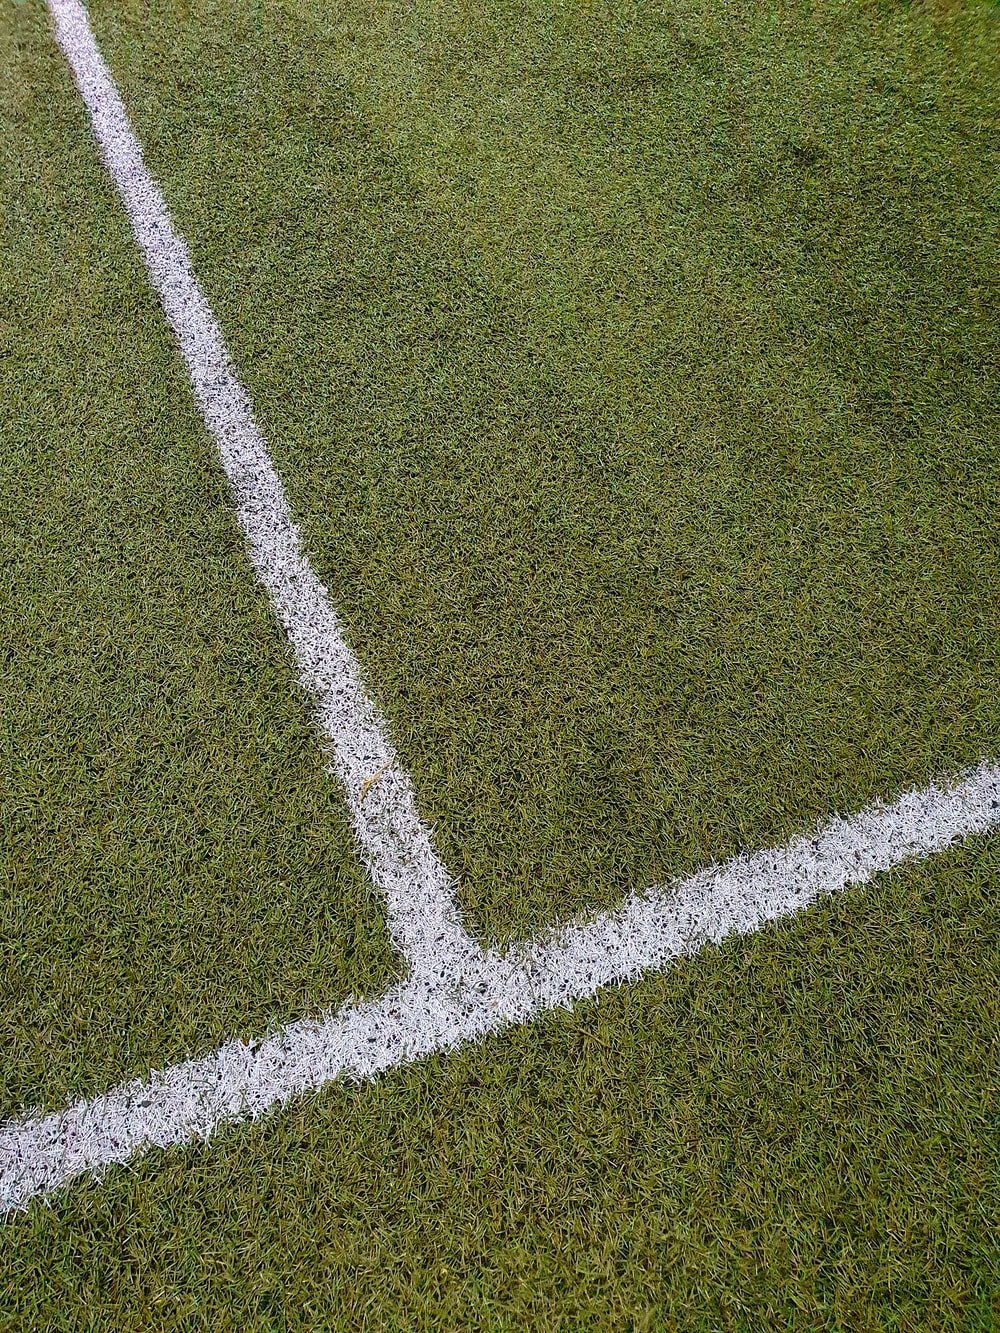 green and white grass field